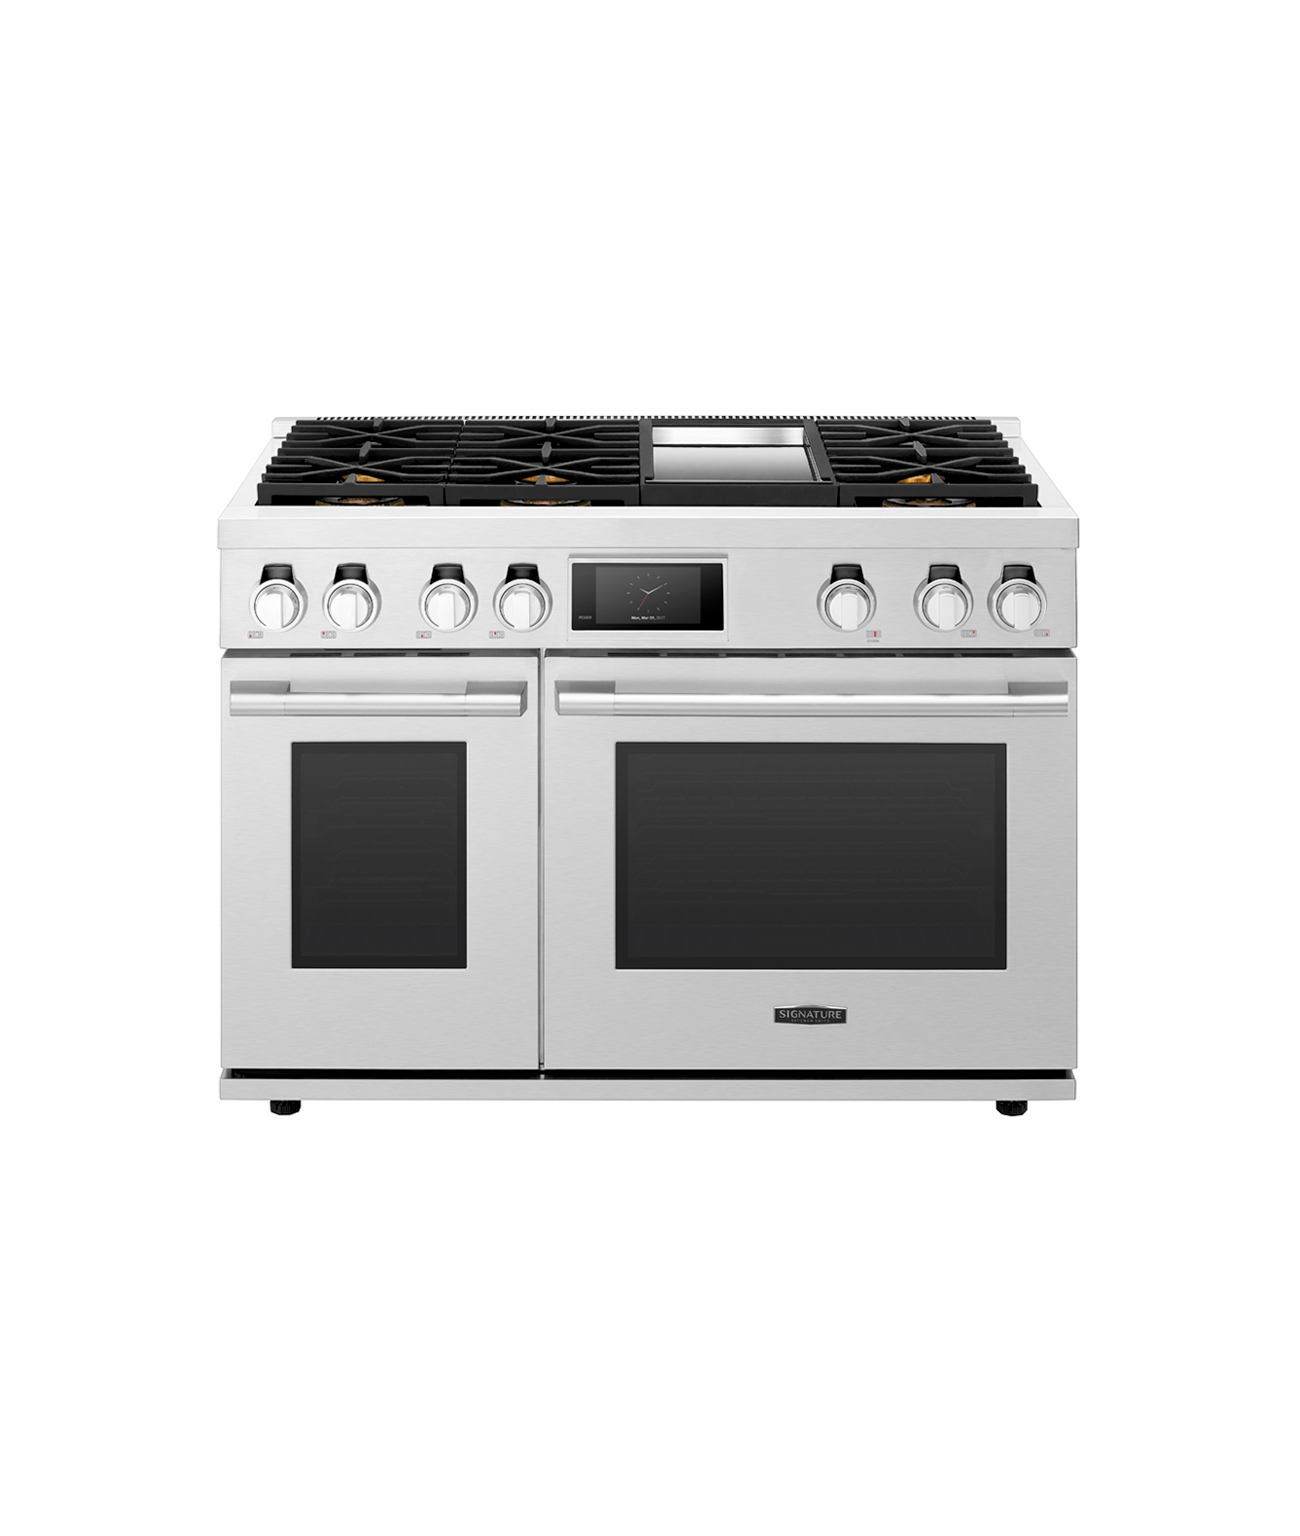 48-inch Gas Range with 6 Burners and Griddle from Signature Kitchen Suite